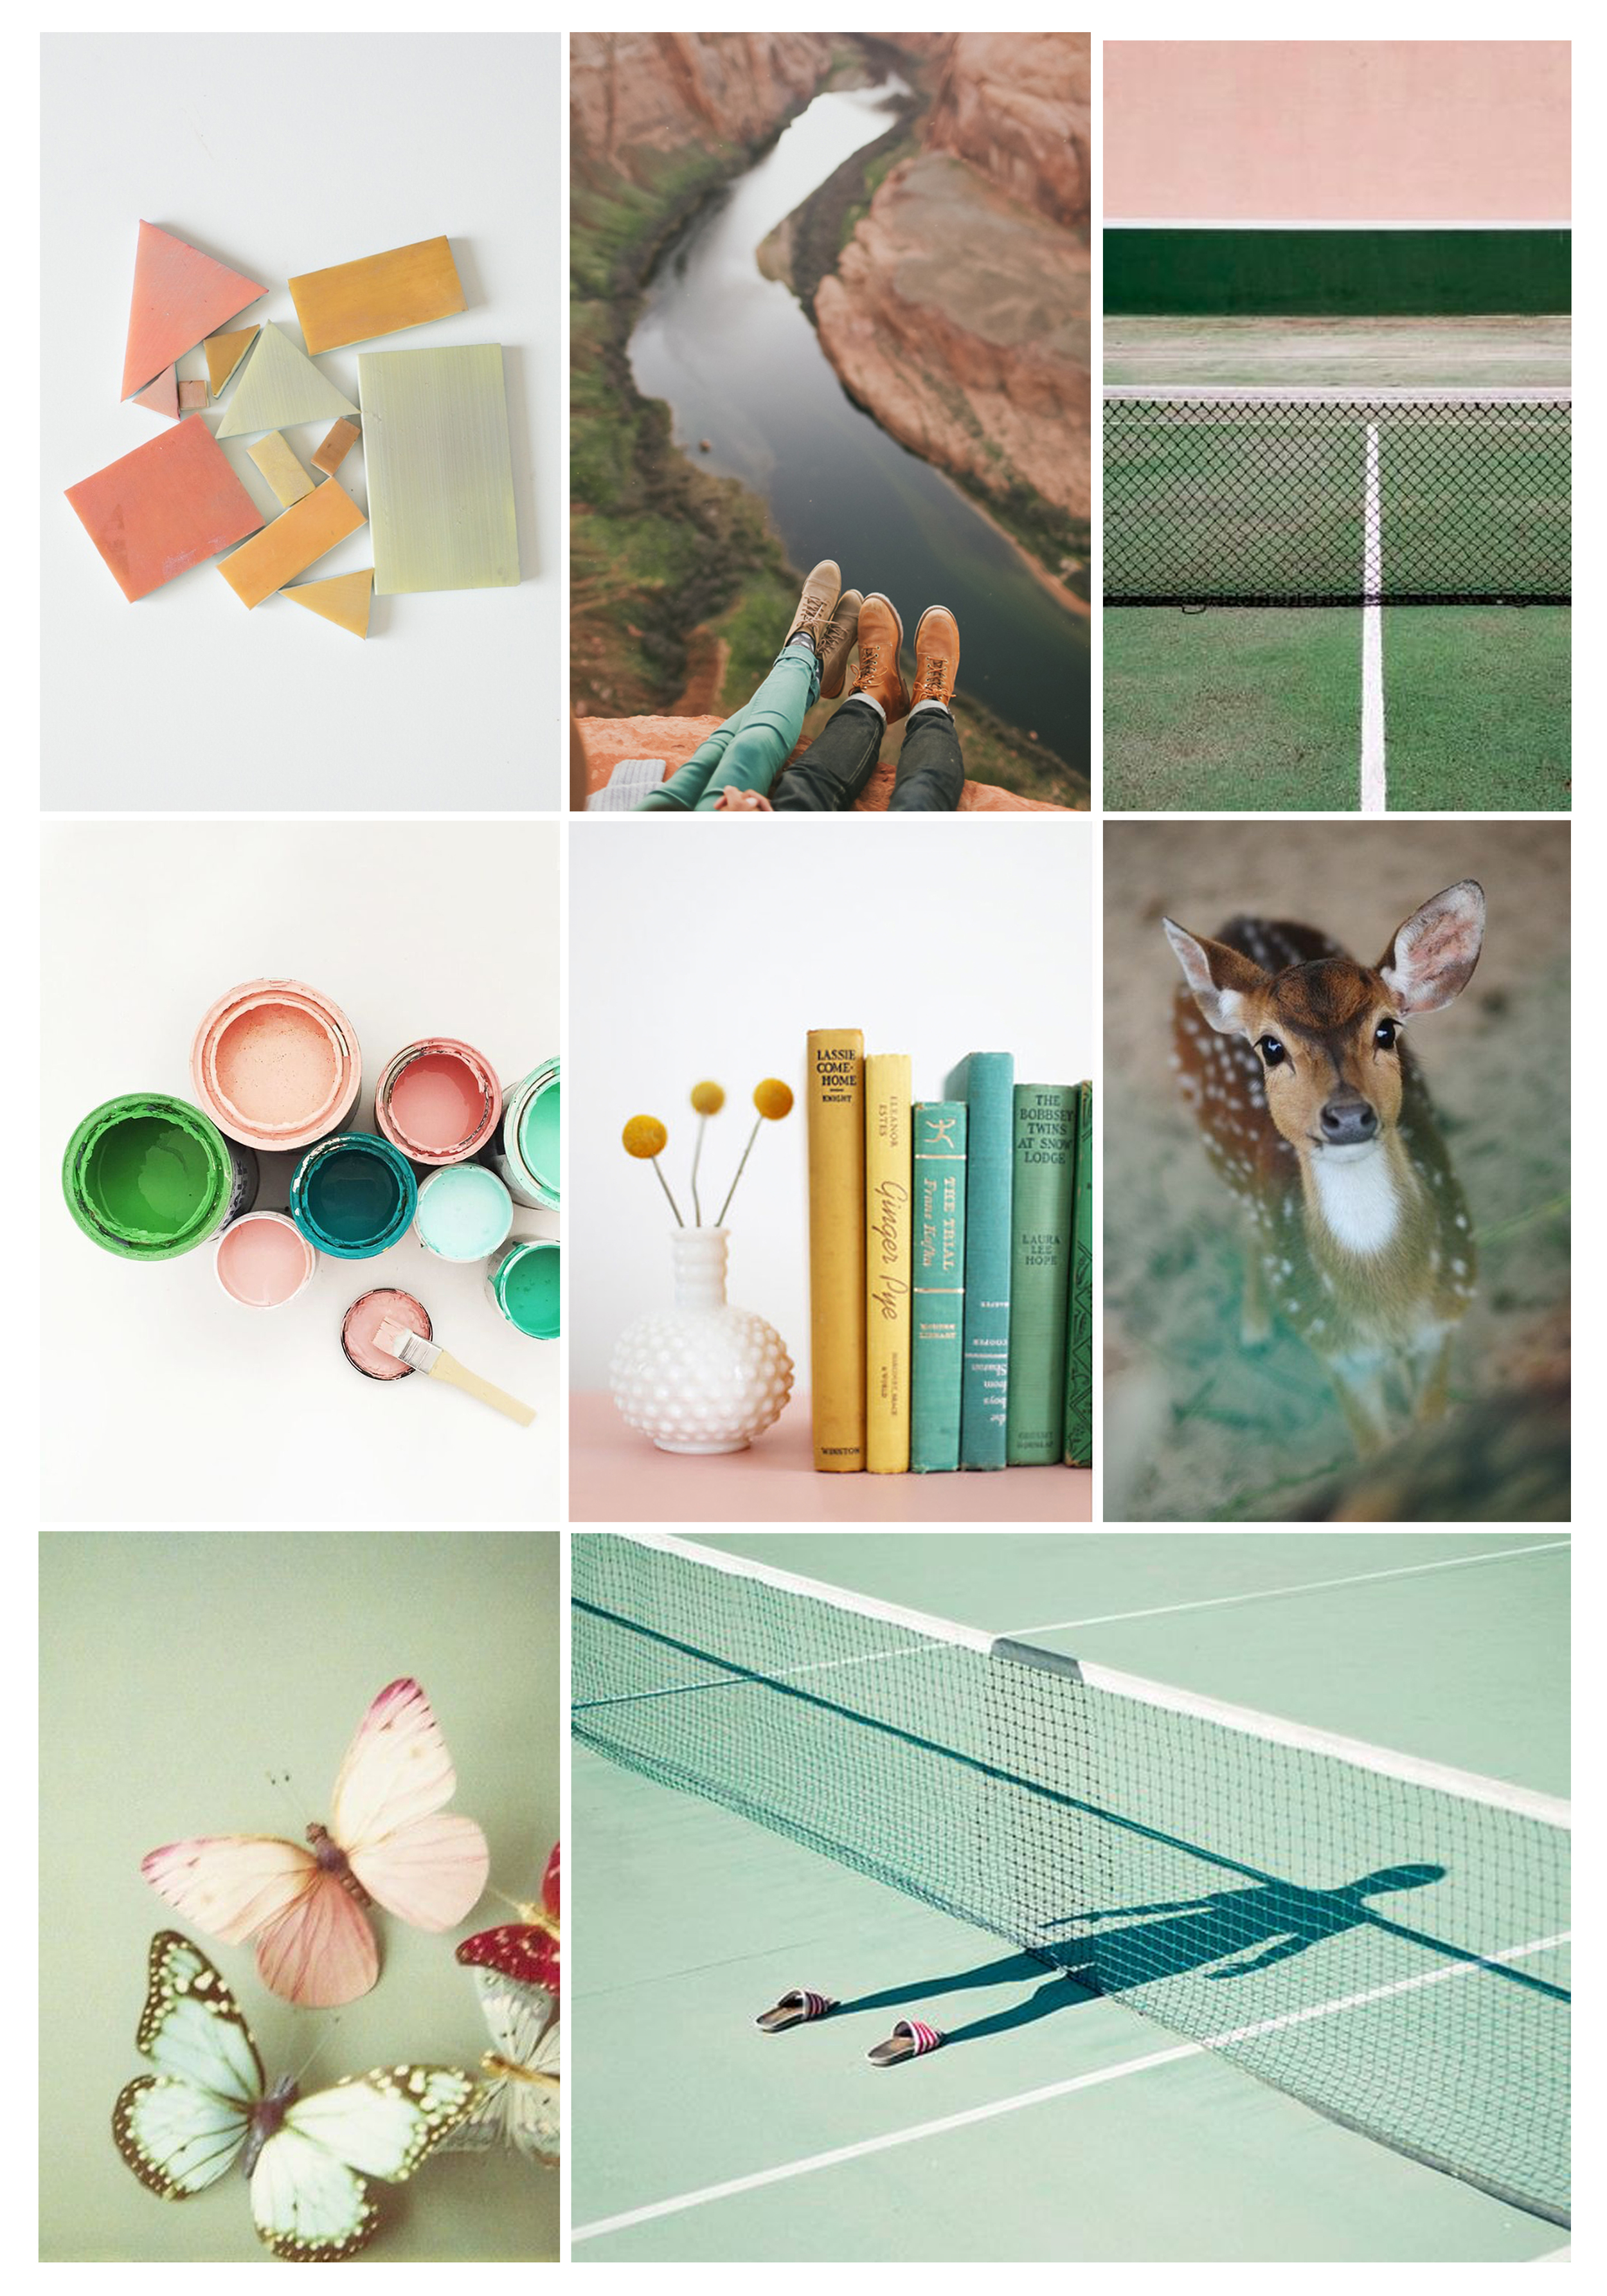 WEEKLY INSPIRATION WITH MONDAY MOOD BOARD 41 | THE PAPER CURATOR